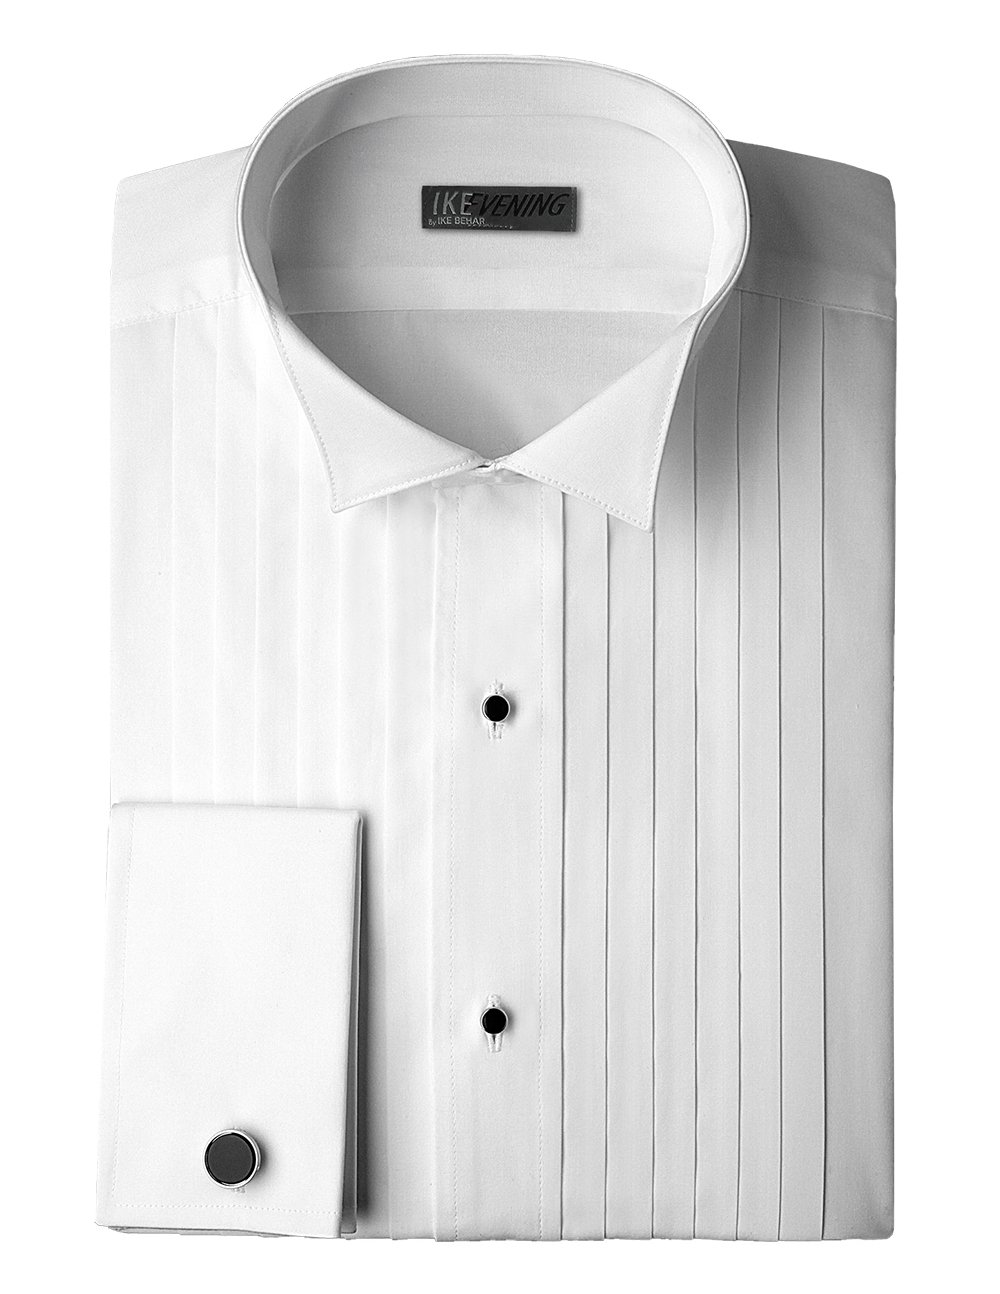 Ike Behar Traditional Fit 100% Woven Cotton Tuxedo Shirt with French Cuffs by Ike Behar